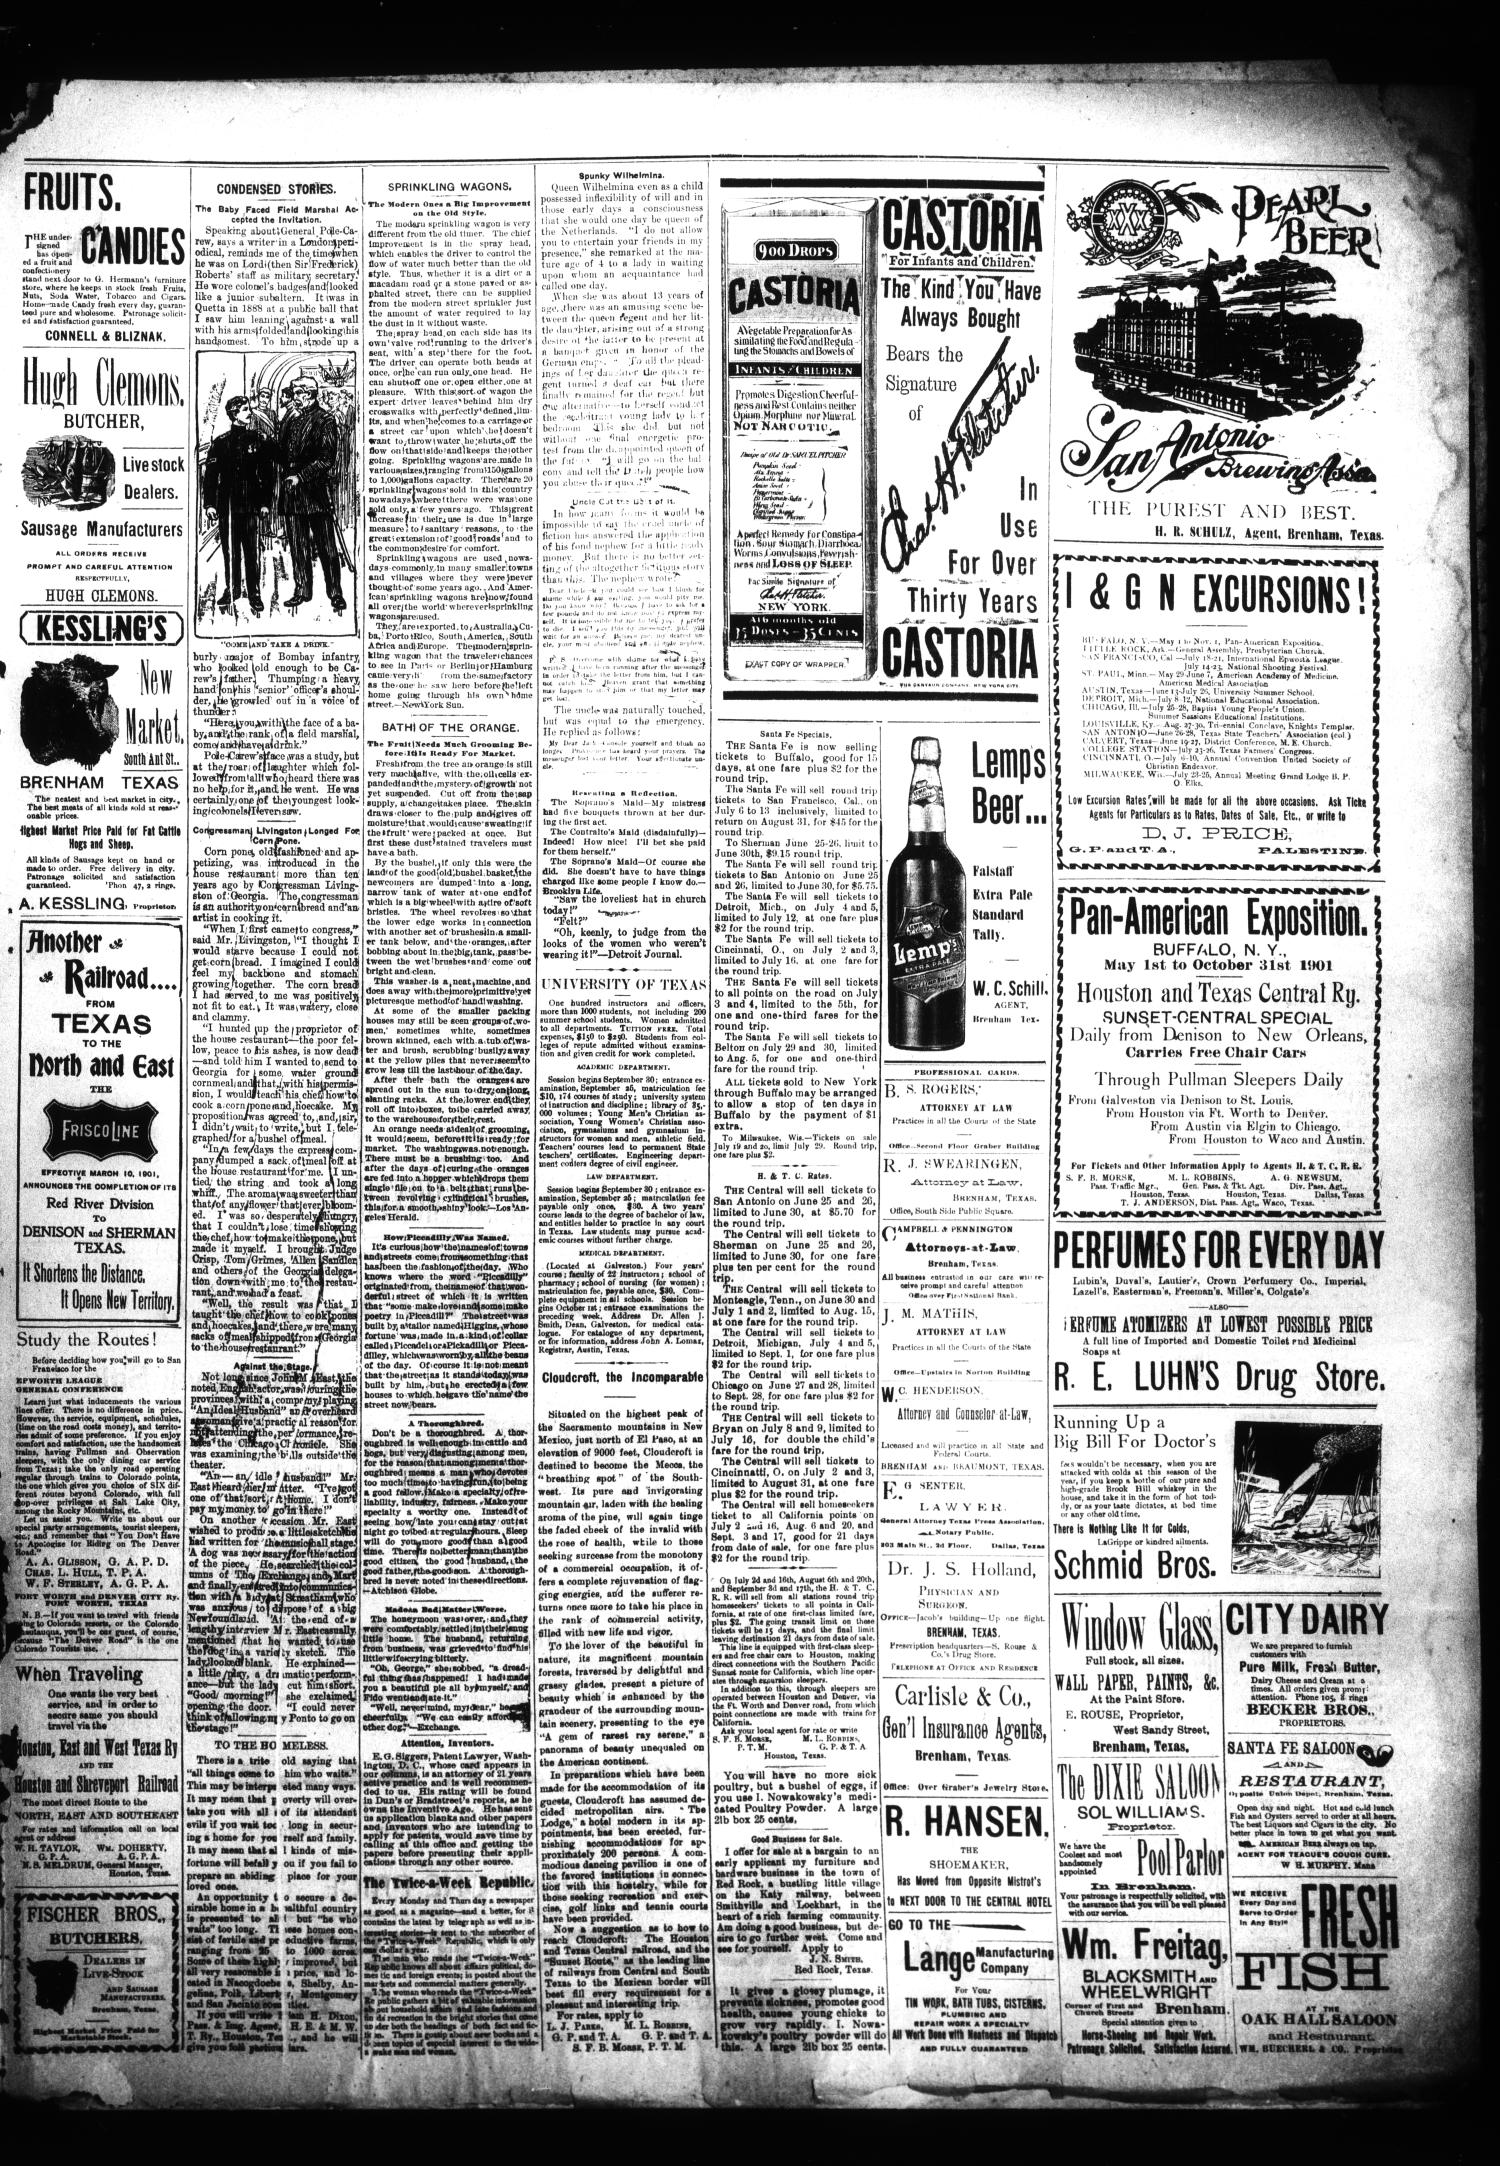 Brenham Daily Banner. (Brenham, Tex.), Vol. 26, No. 152, Ed. 1 Saturday, June 29, 1901                                                                                                      [Sequence #]: 3 of 4